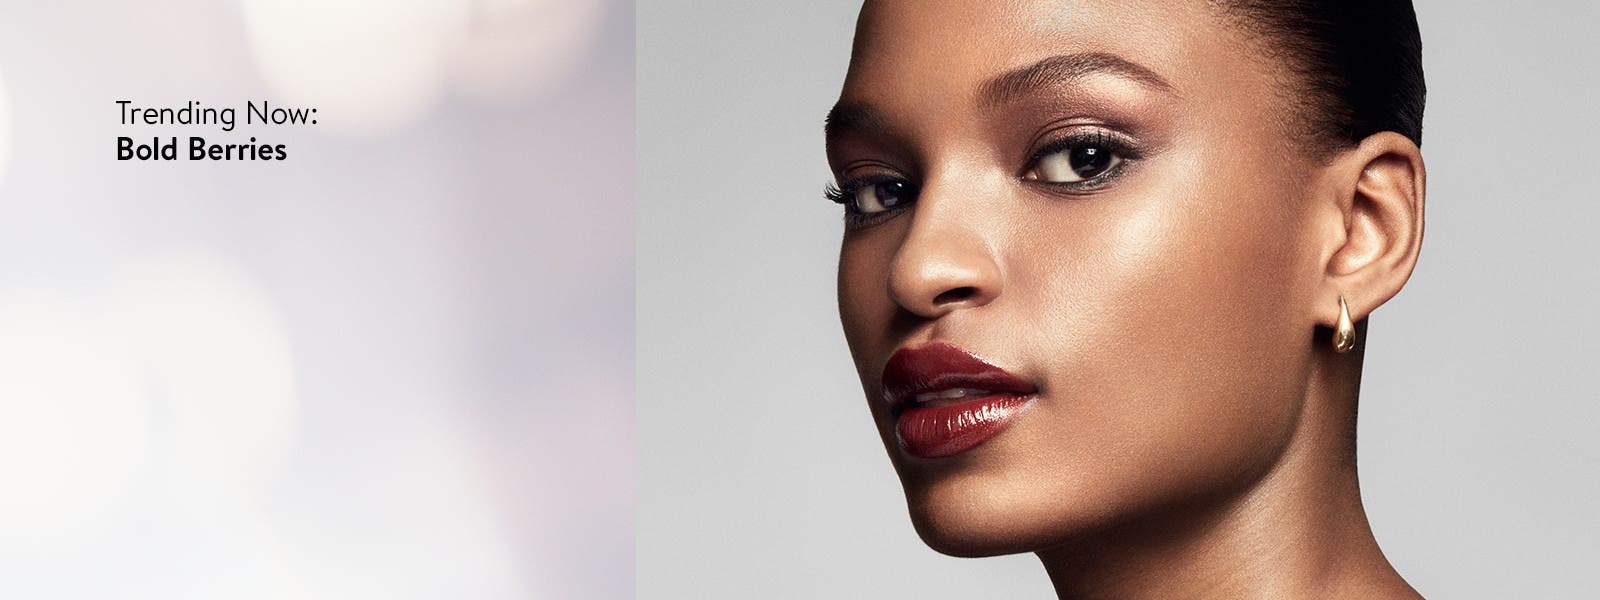 Trending now: bold berry lip color.